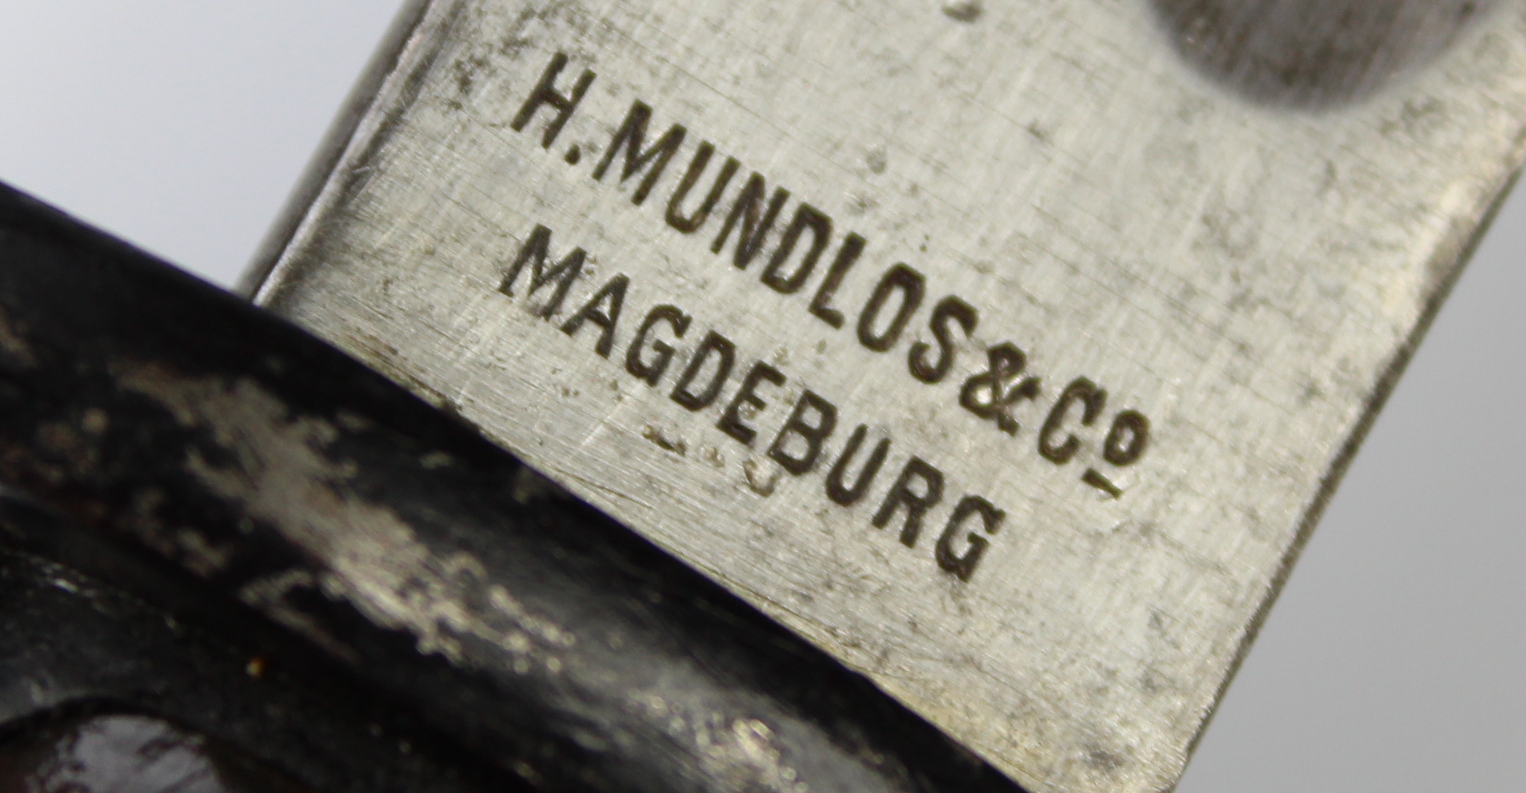 H. Mundlos & Co Magdeburg